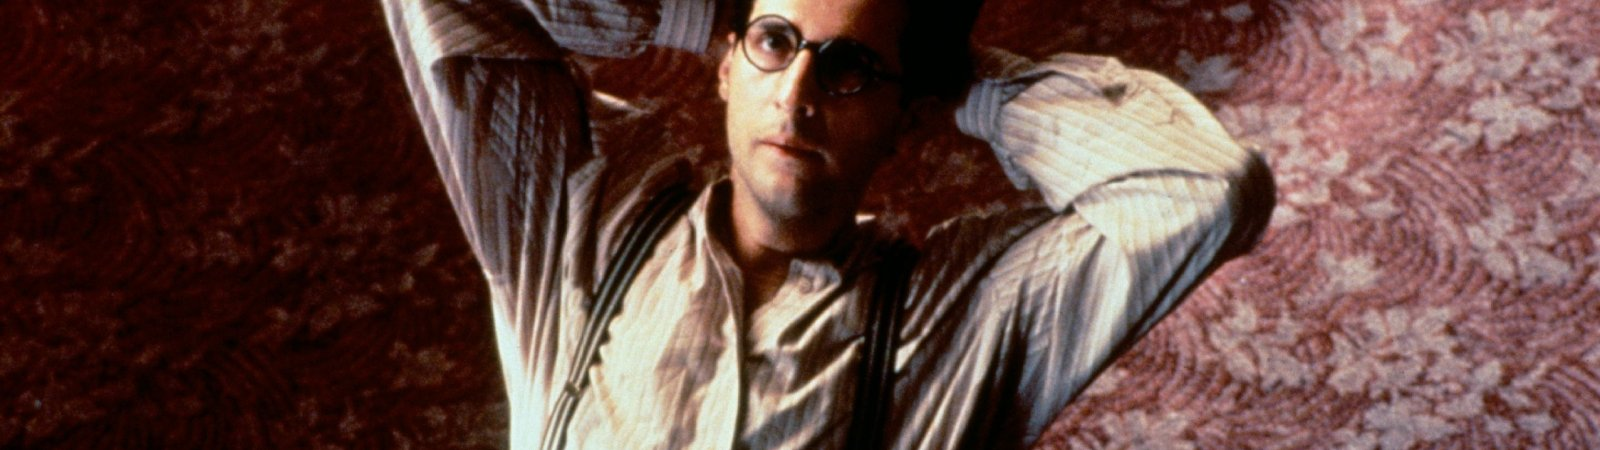 Photo du film : Barton Fink